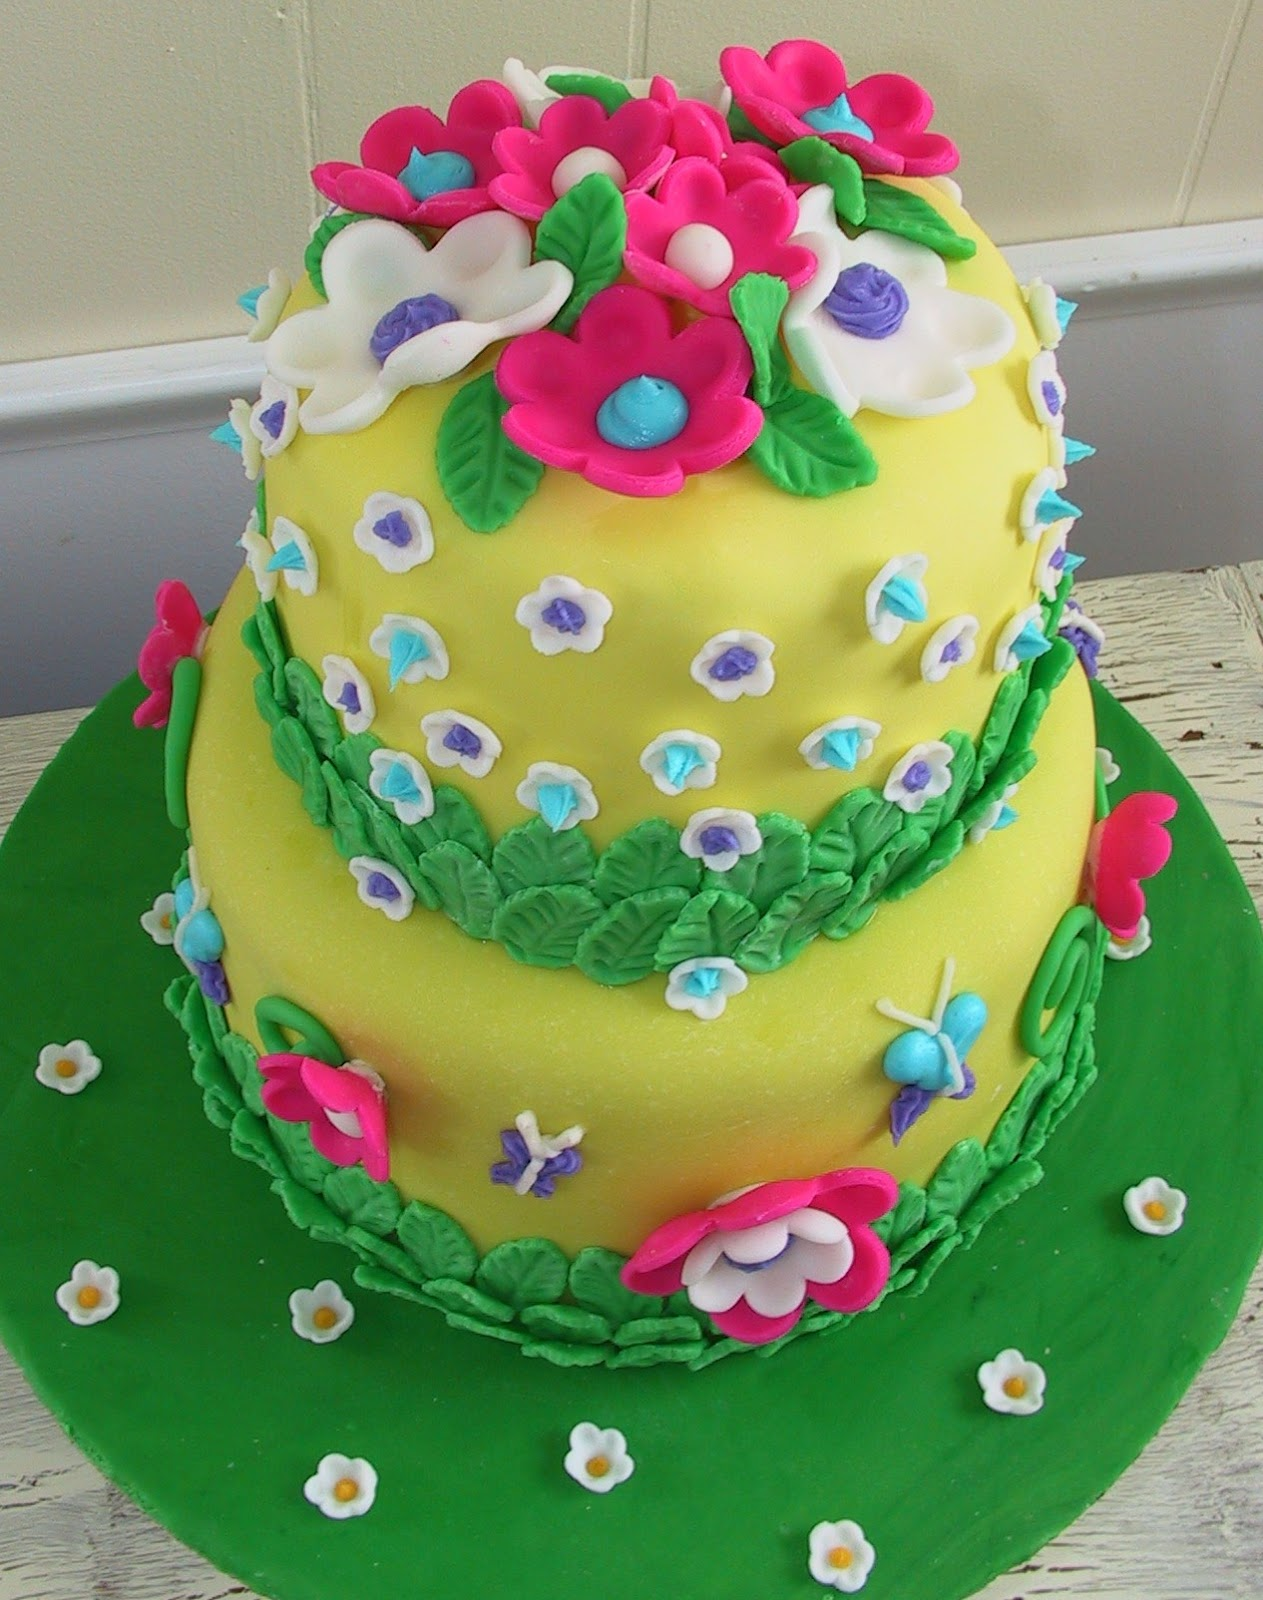 Delicious Cake Blogger Flower Birthday Cake Ideas